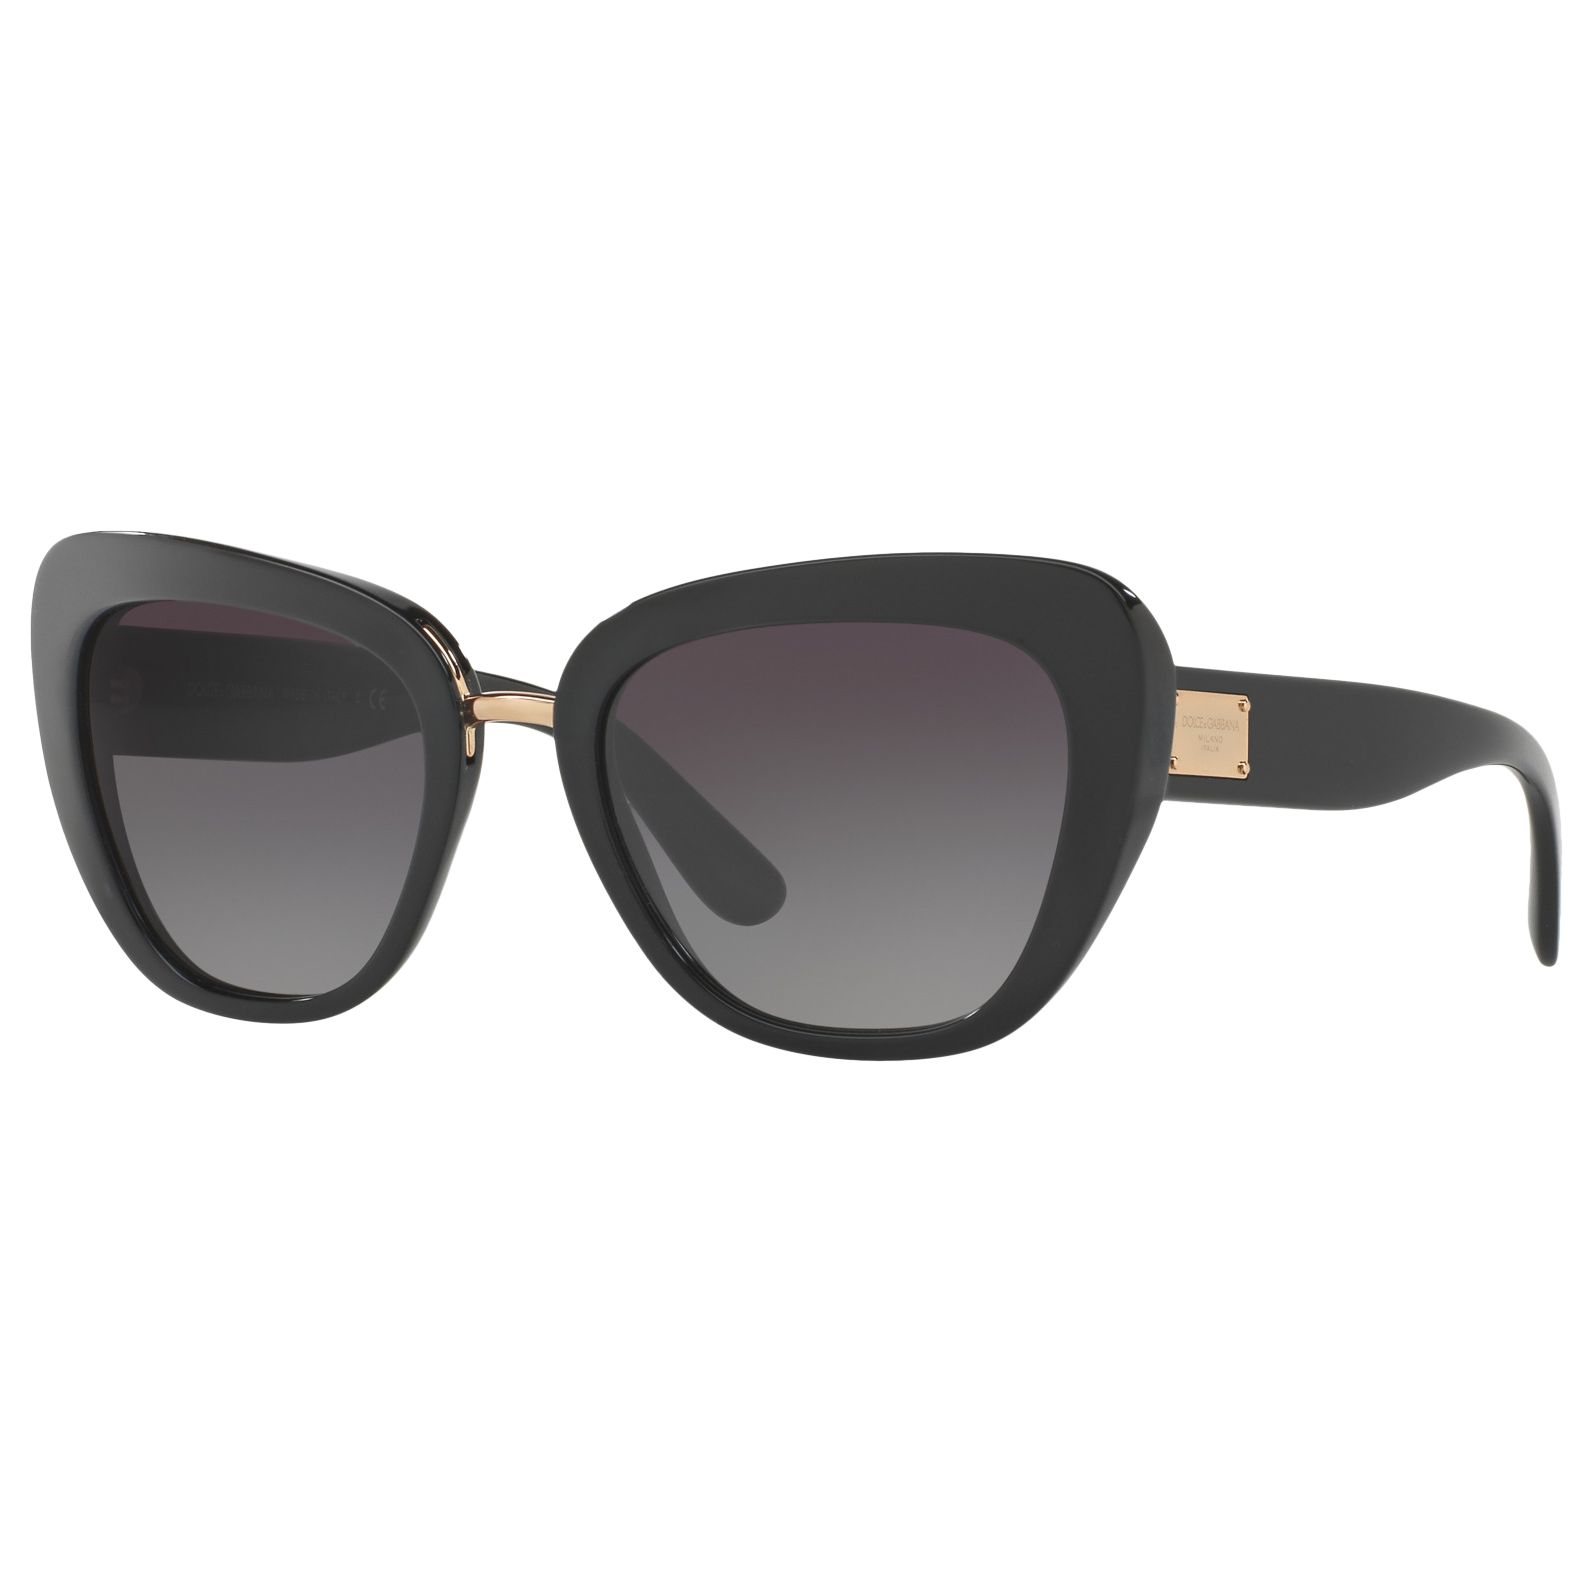 Dolce & Gabbana Dolce & Gabbana DG4296 Cat's Eye Sunglasses